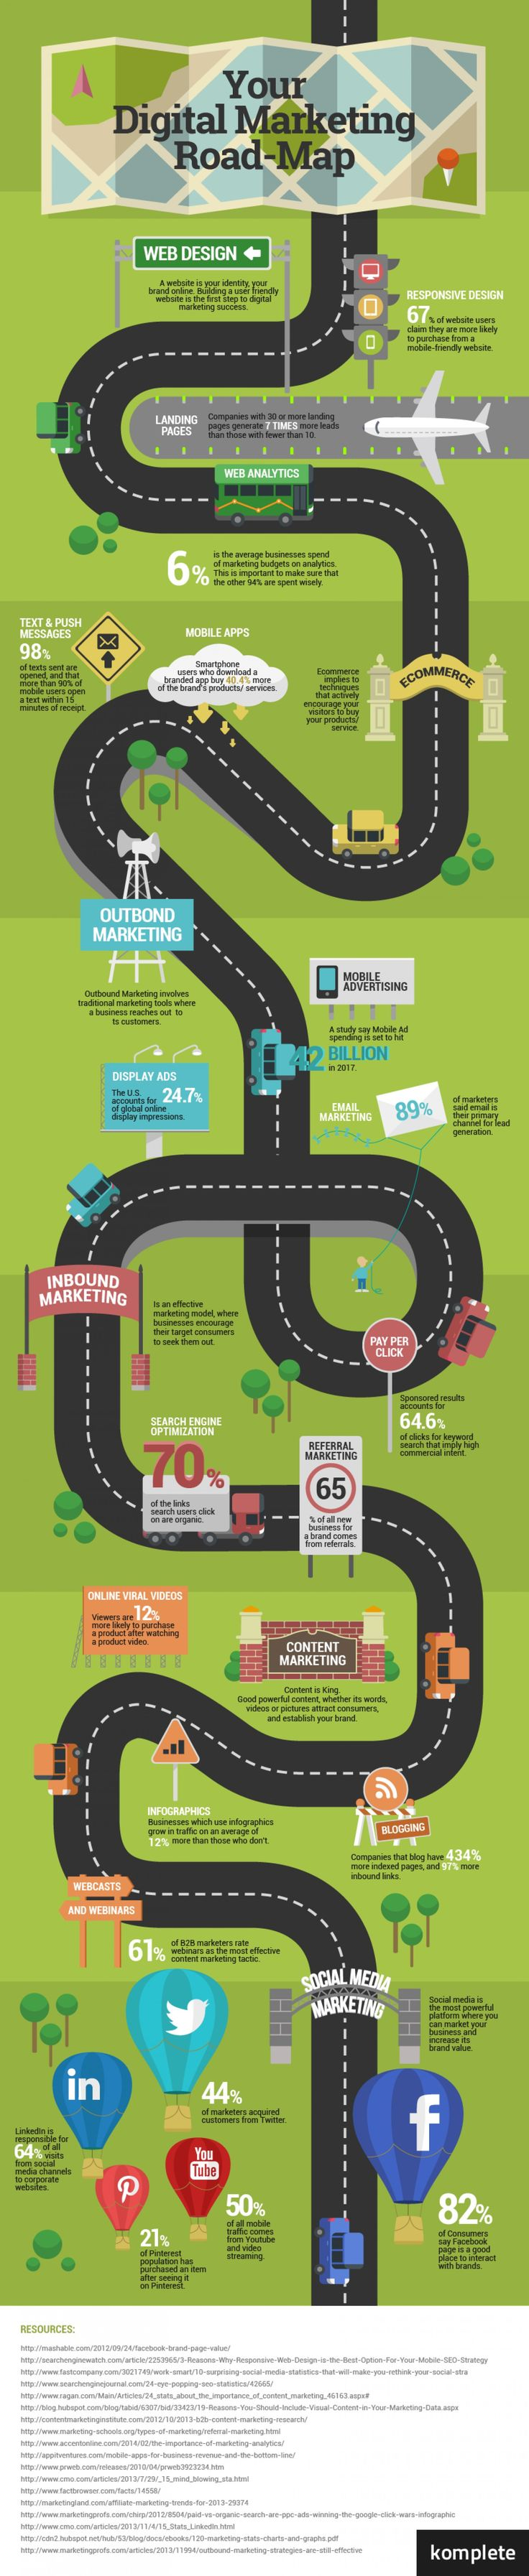 Your Digital #Marketing Road-Map